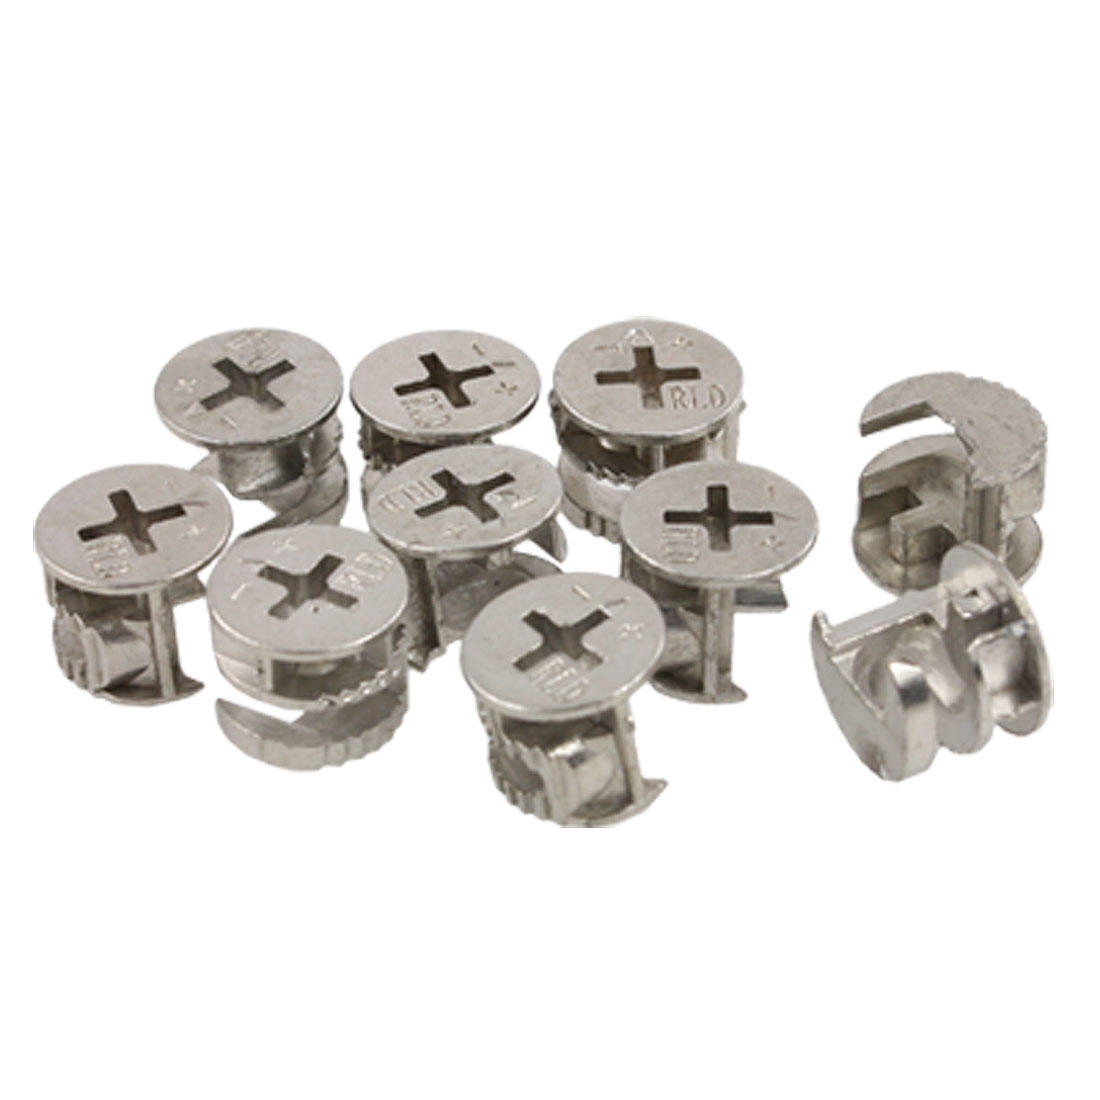 "14.4mm 0.567"" Dia Metal Furniture Cam Fittings 10 Pcs"